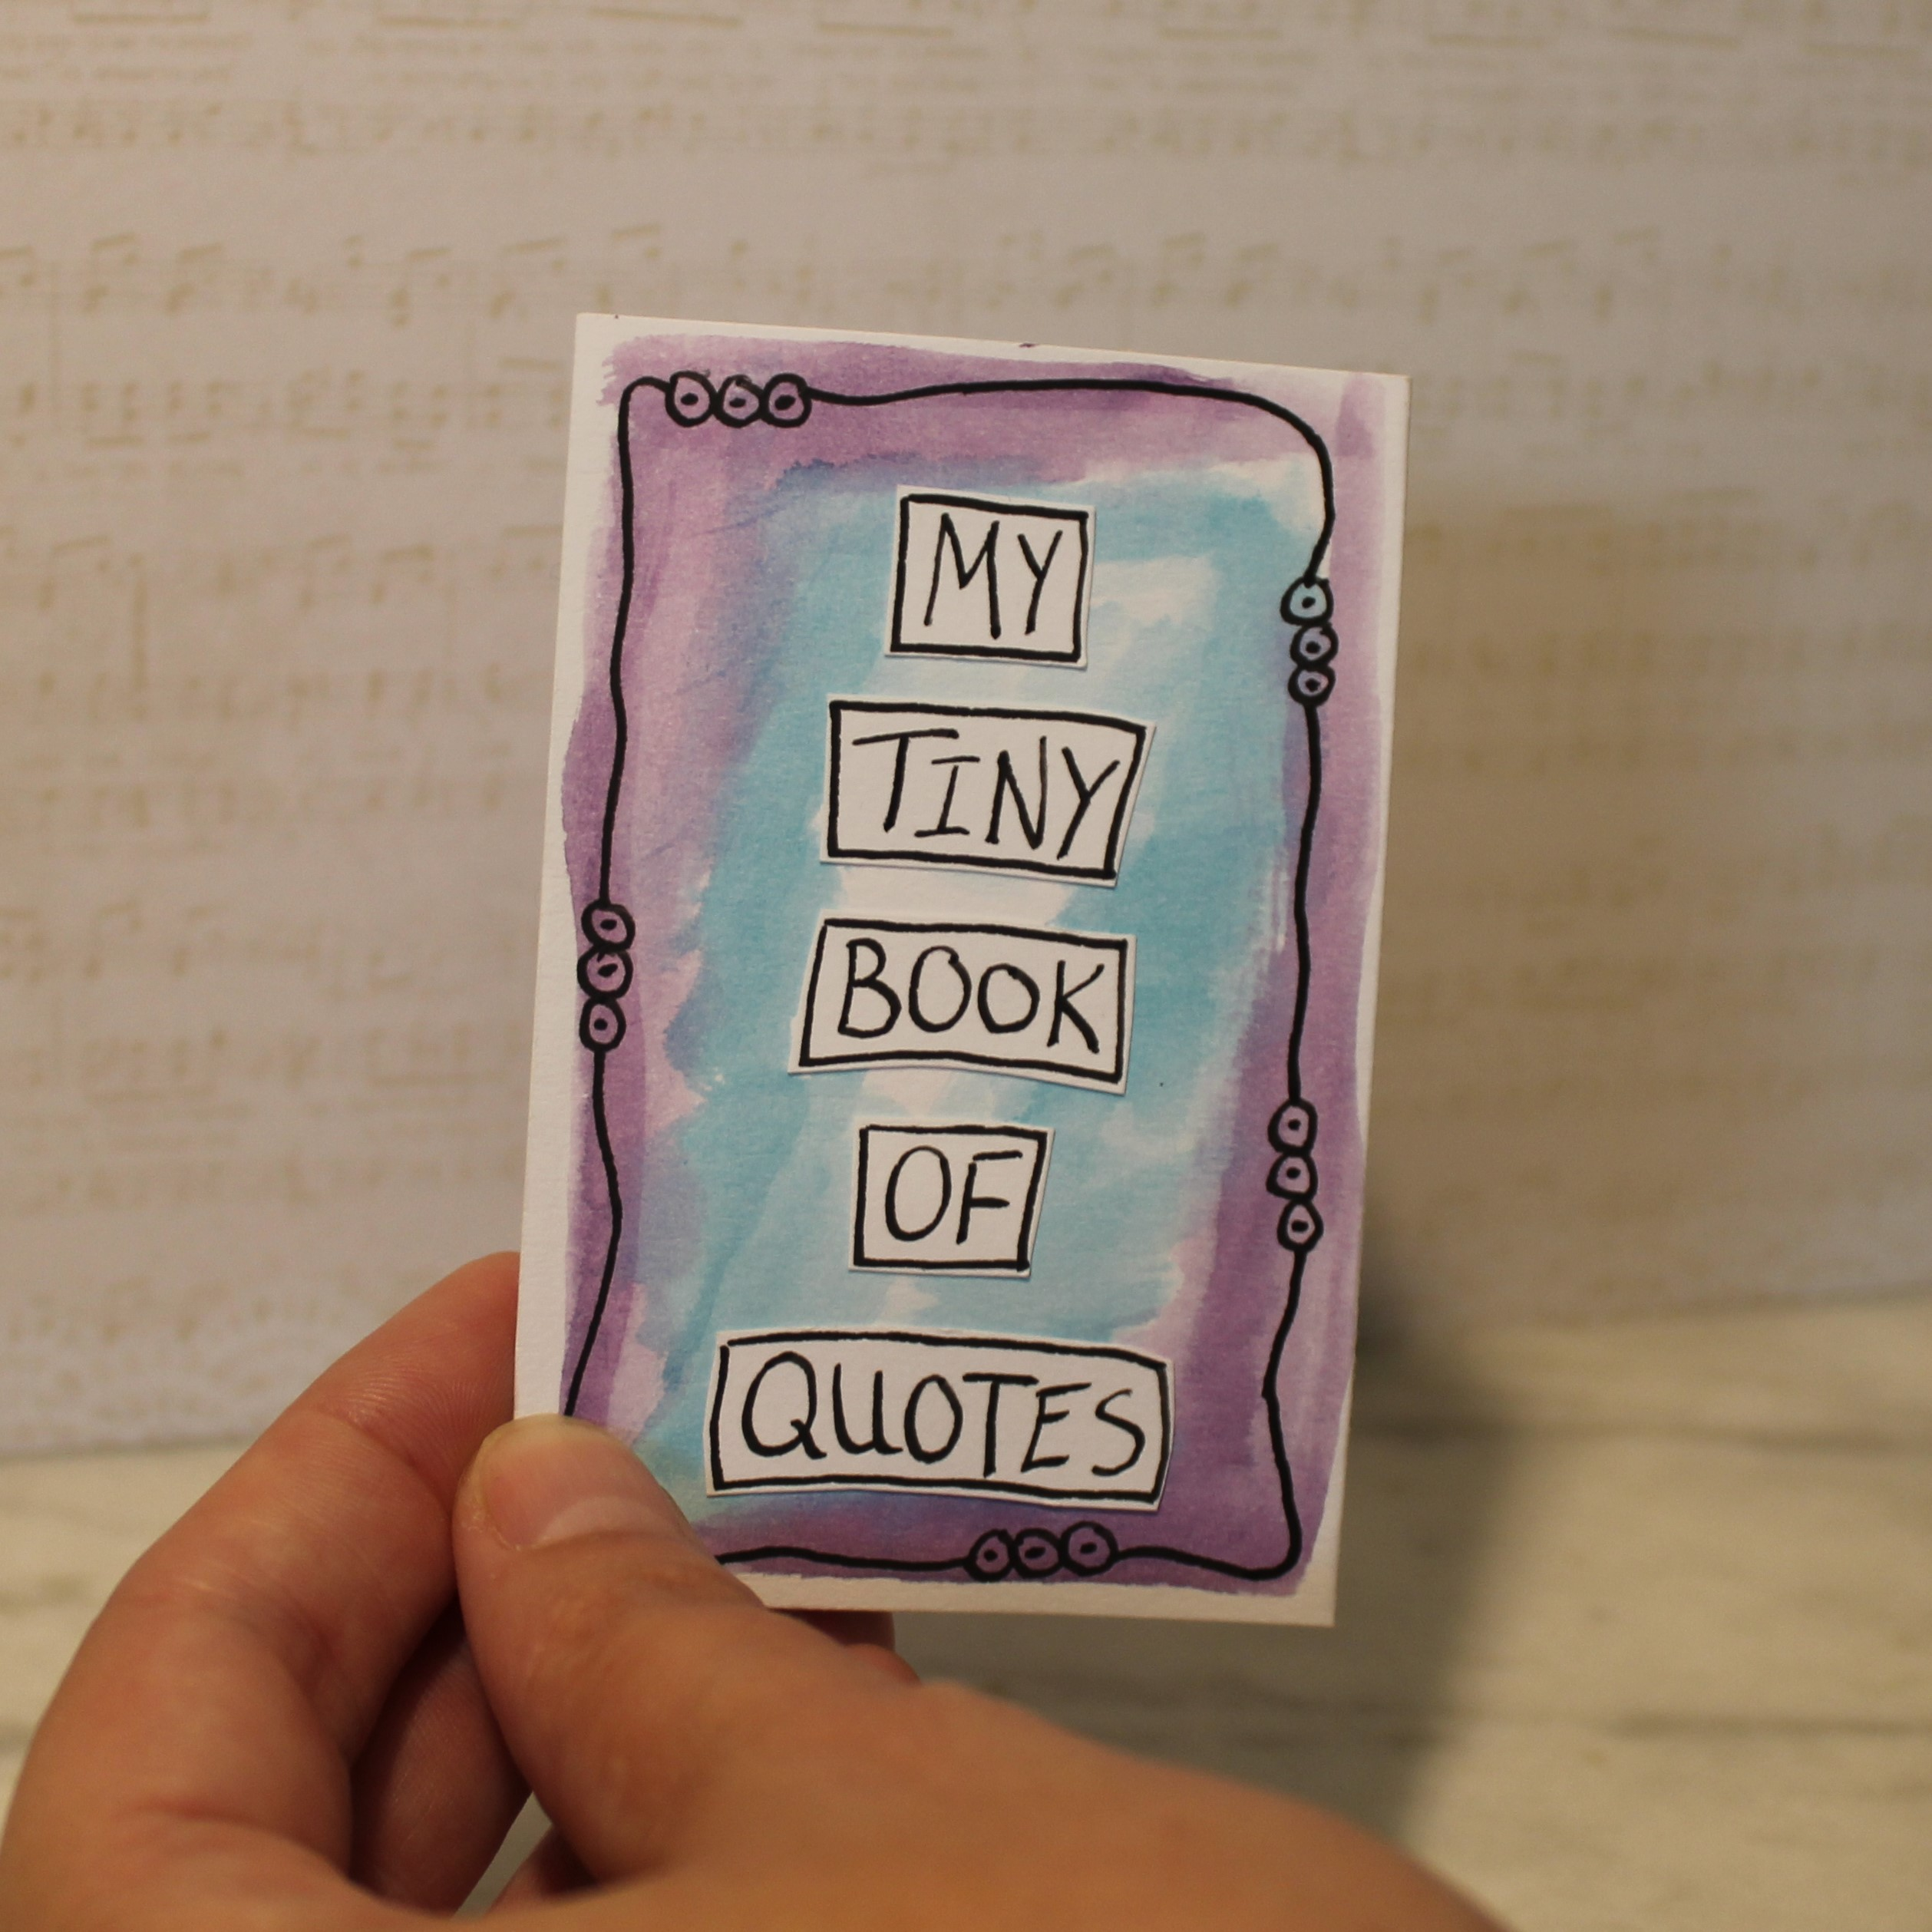 My tiny book of quotes